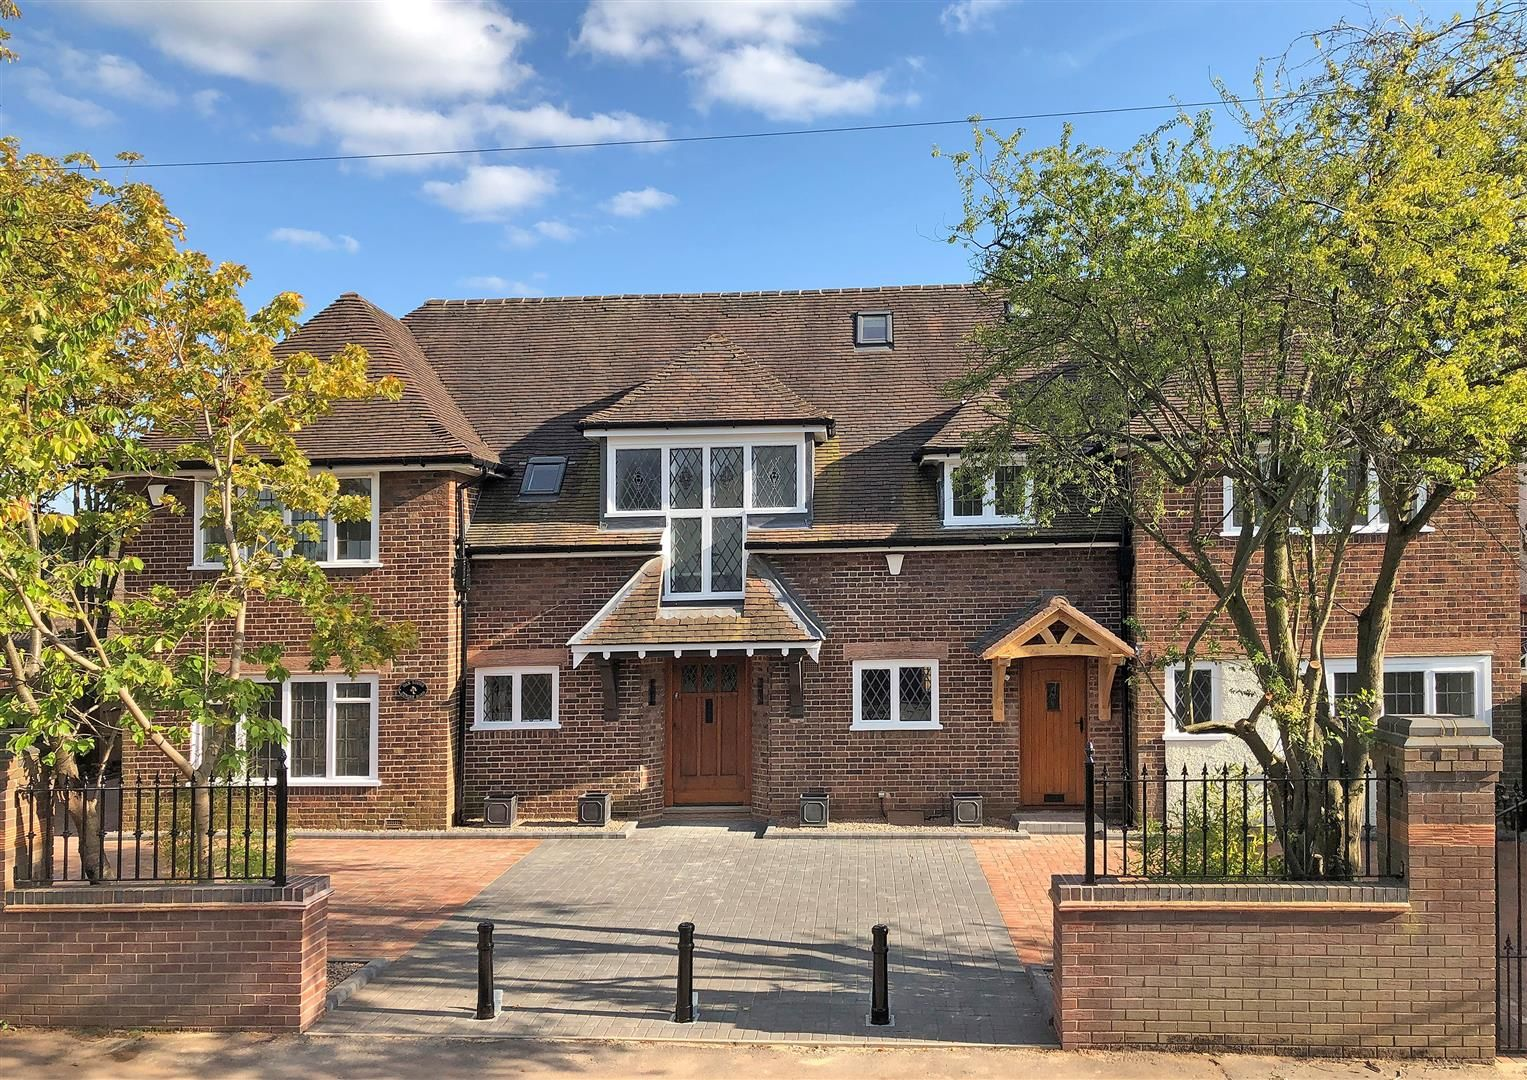 4 bed town-house for sale in Pedmore, DY9